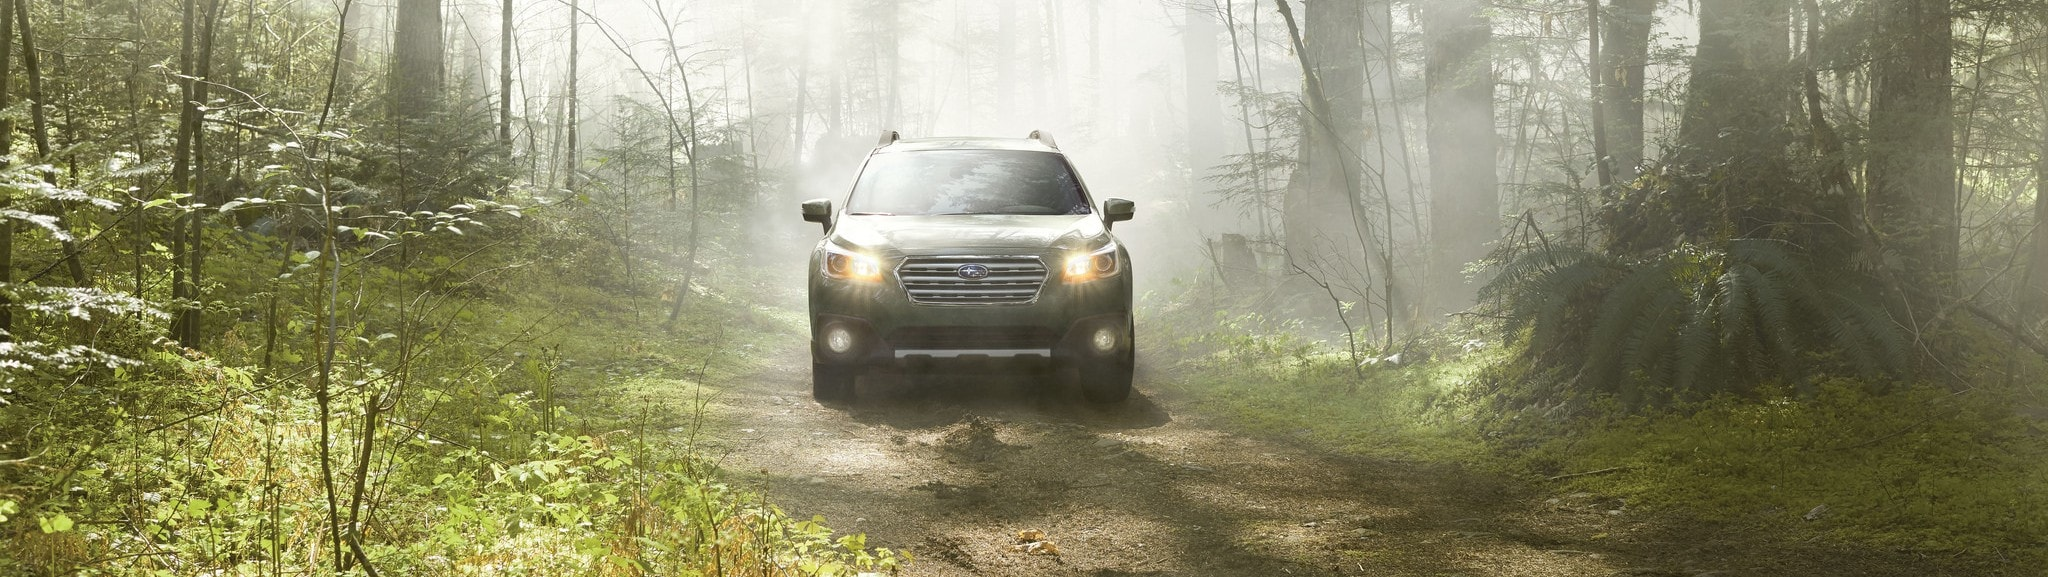 history of the Subaru Outback - silver 2016 Subaru Outback in Hadley, MA